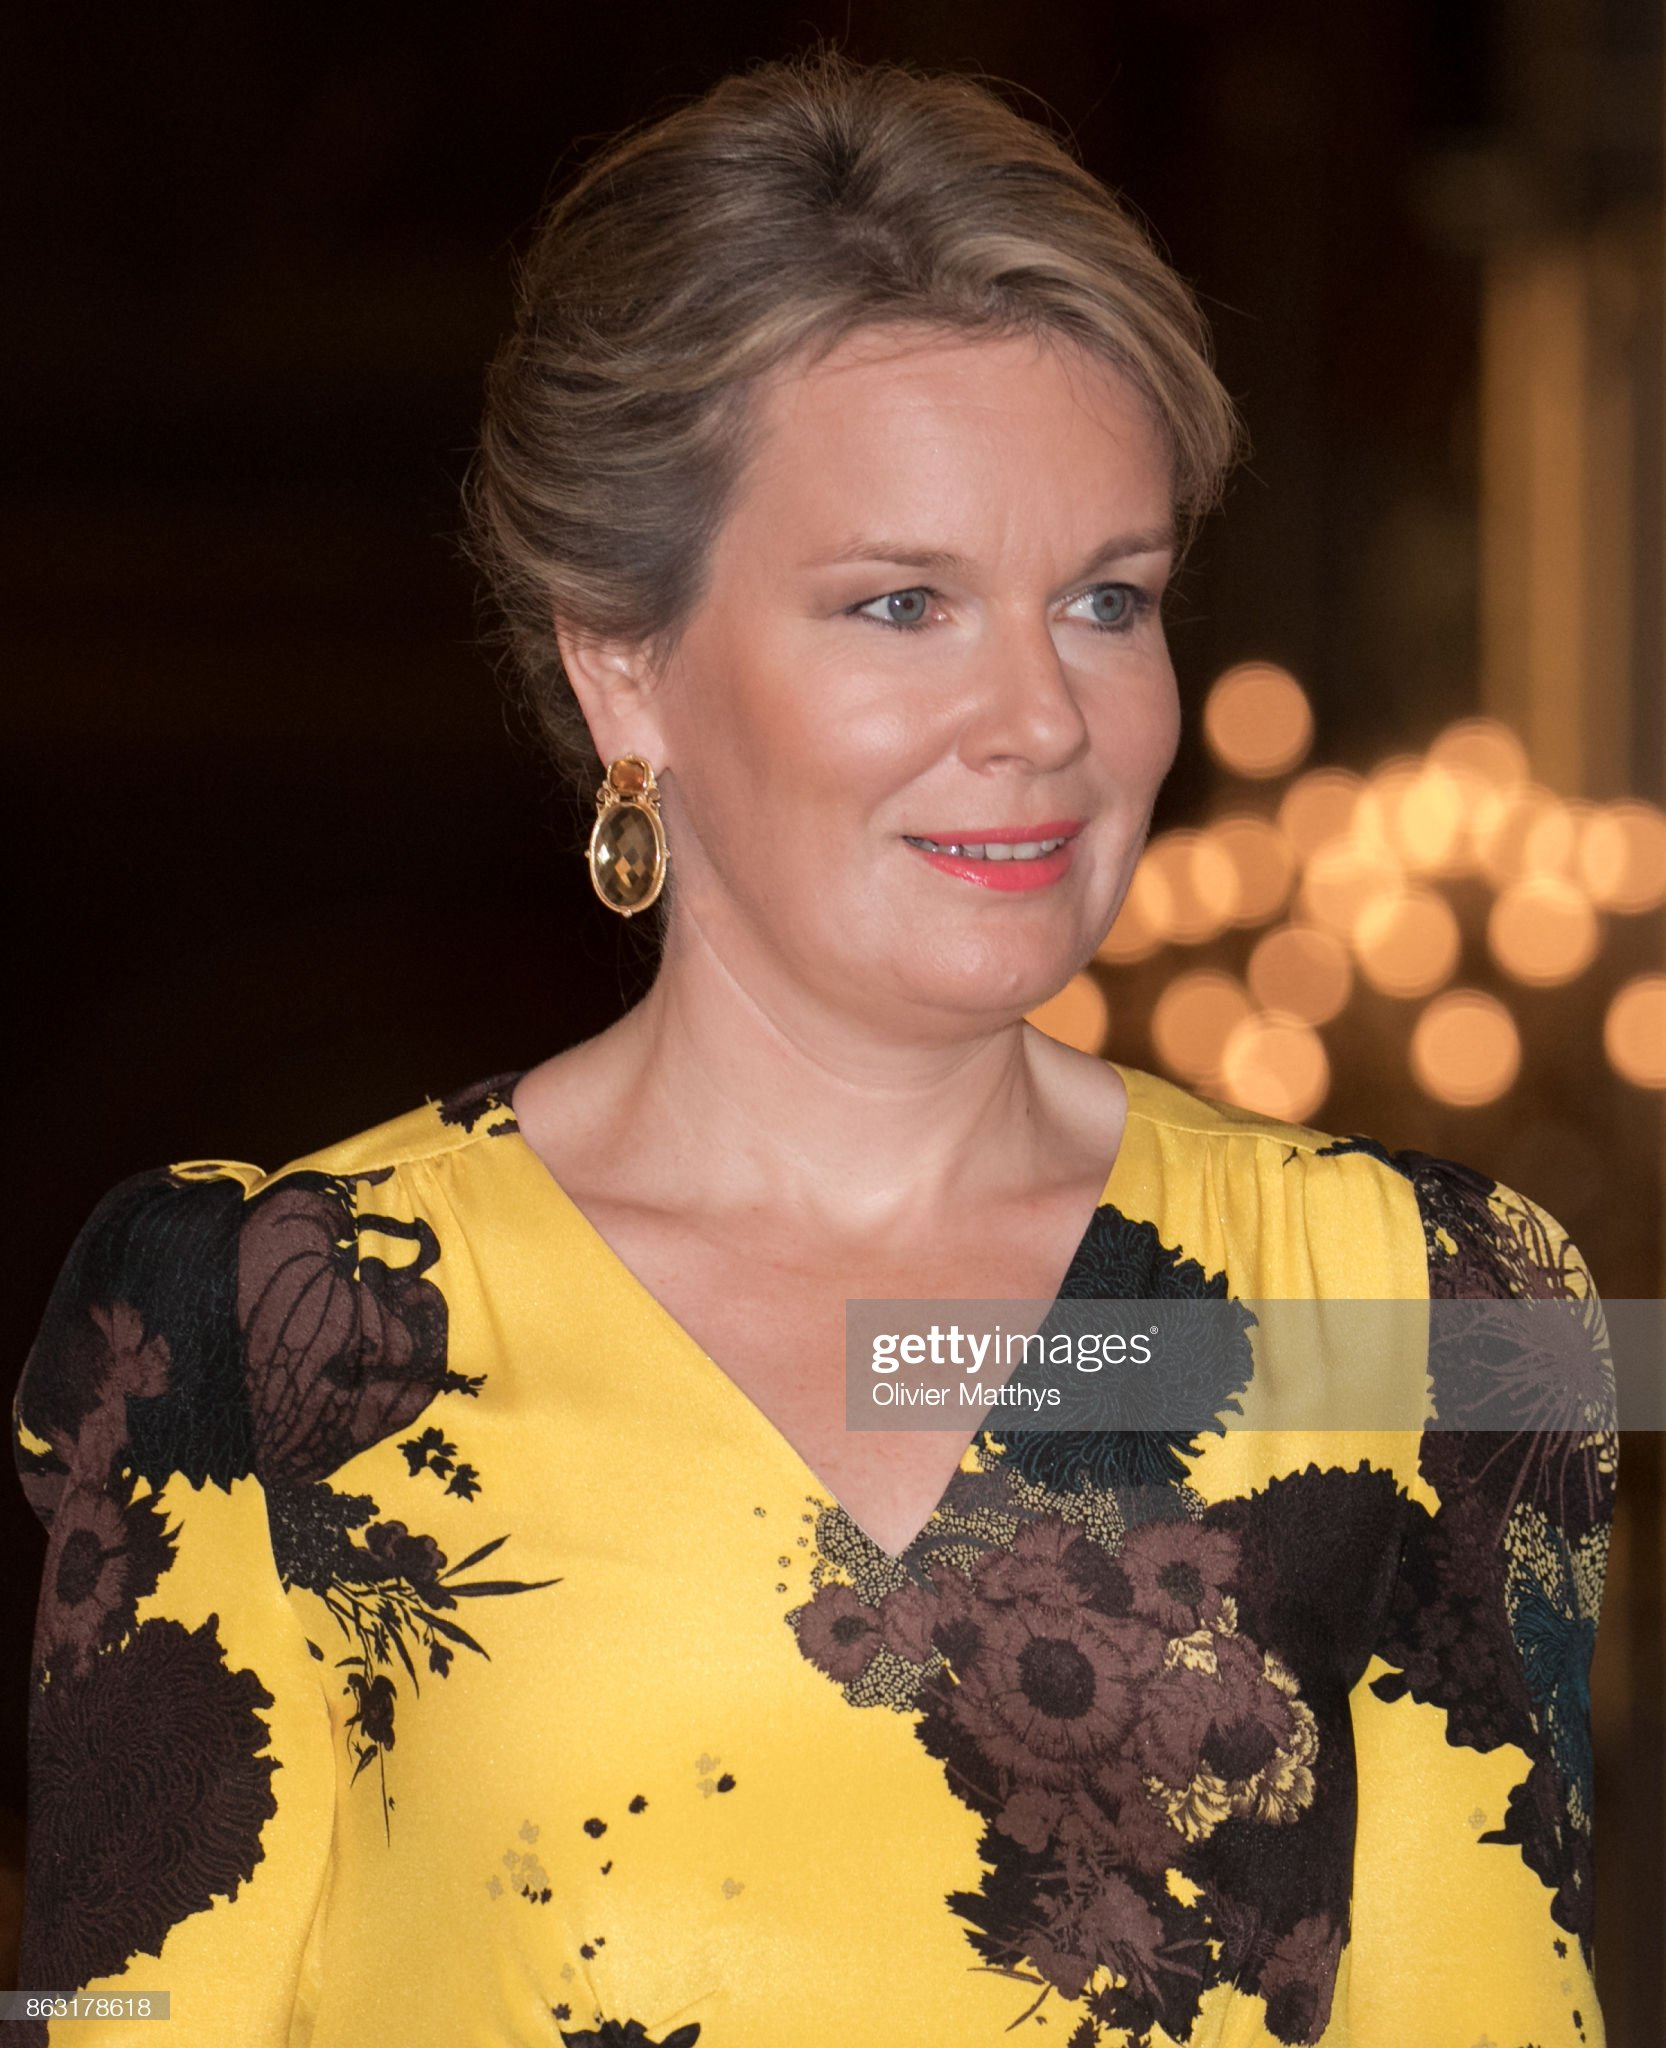 Вечерние наряды Королевы Матильды The Belgian Royal Family Attends The Concert To Honor Young Talents In Brussels : News Photo